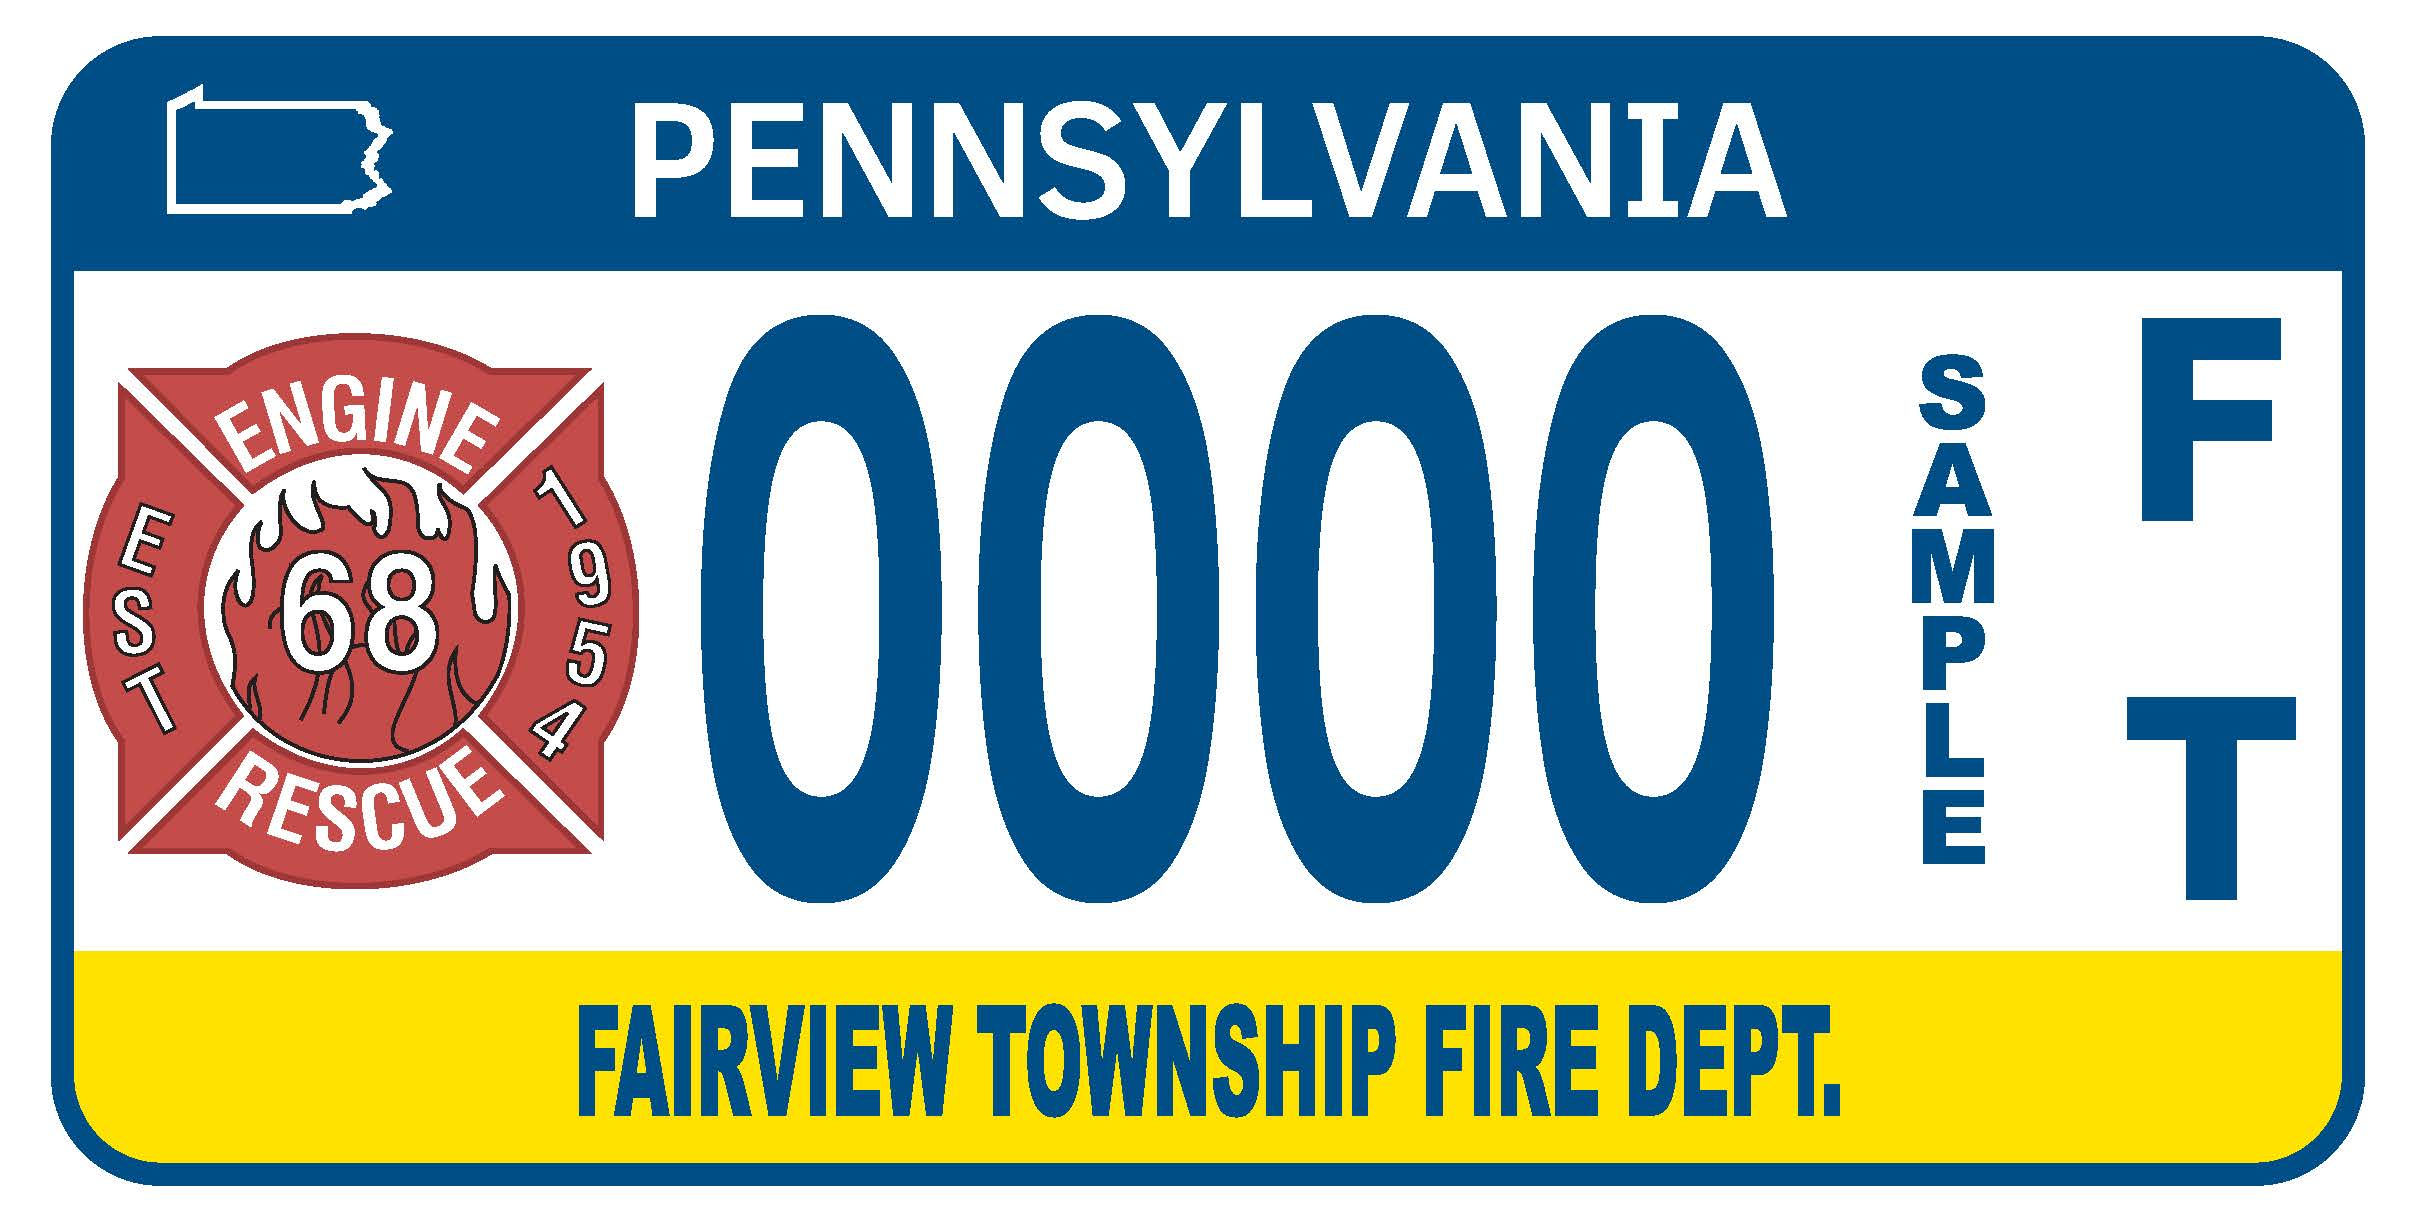 Fairview Township Fire Department